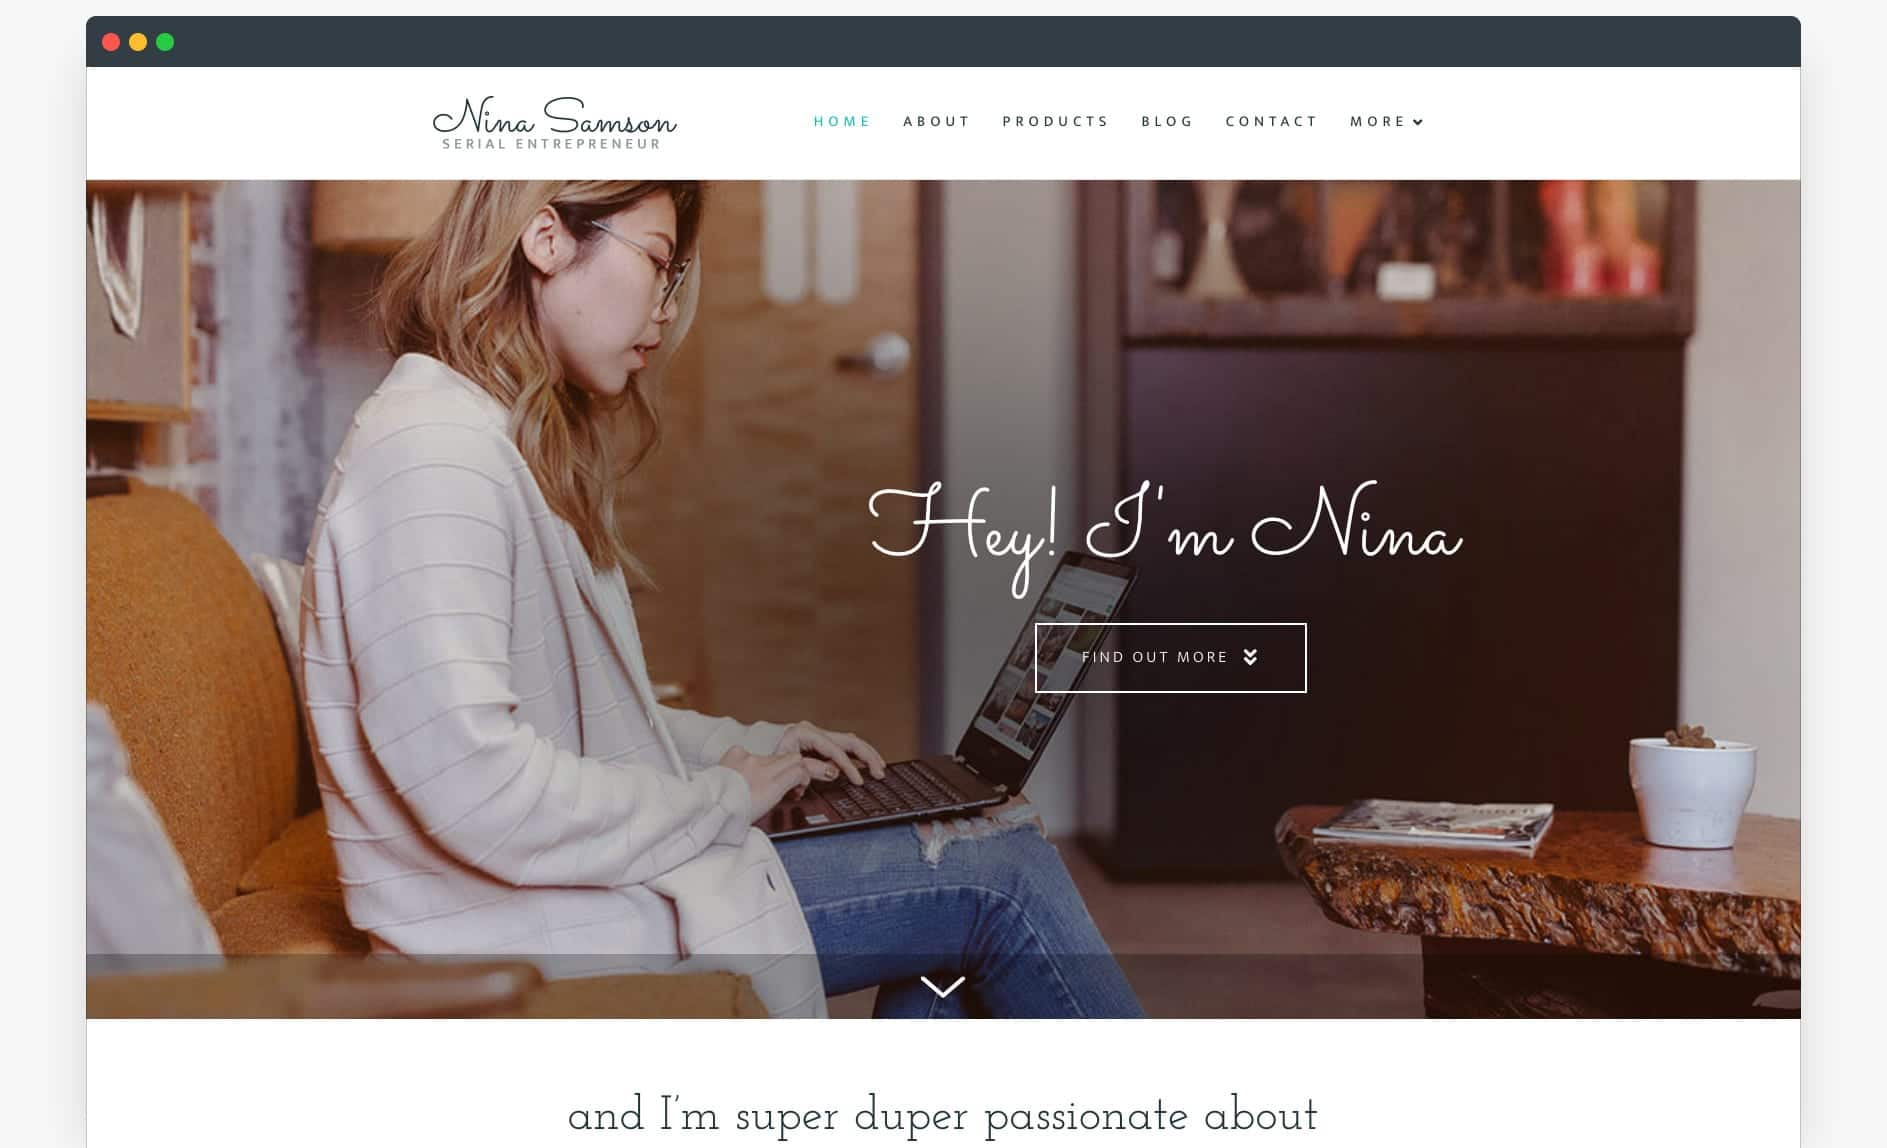 Website Template - The Entrepreneur